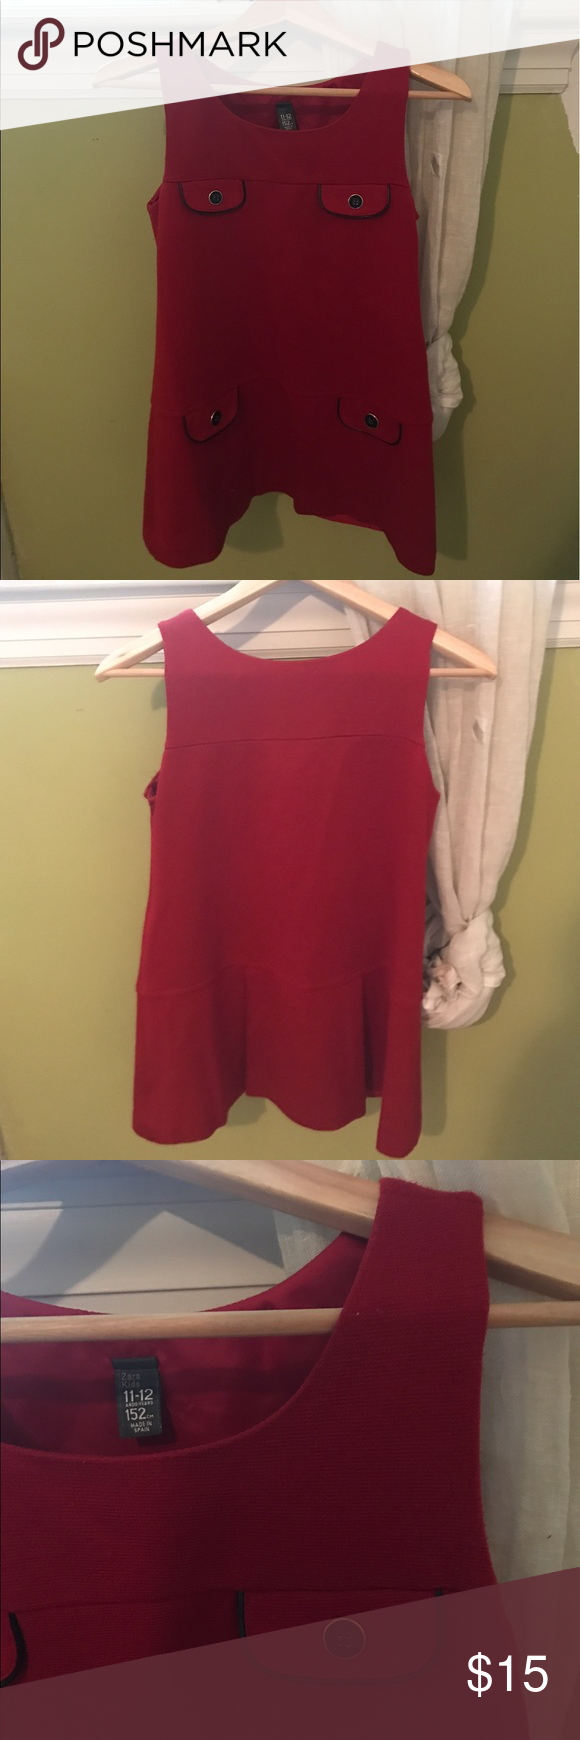 Girls Zara Dress Gently worn red shift dress by Zara Kids                               Made for girls 11-12 years, 152 centimeters long               Fabric; 95% acrylic, 3% polyamide, and 2% elastane         Worn once and in excellent condition                                   All offers considered Zara Dresses Formal